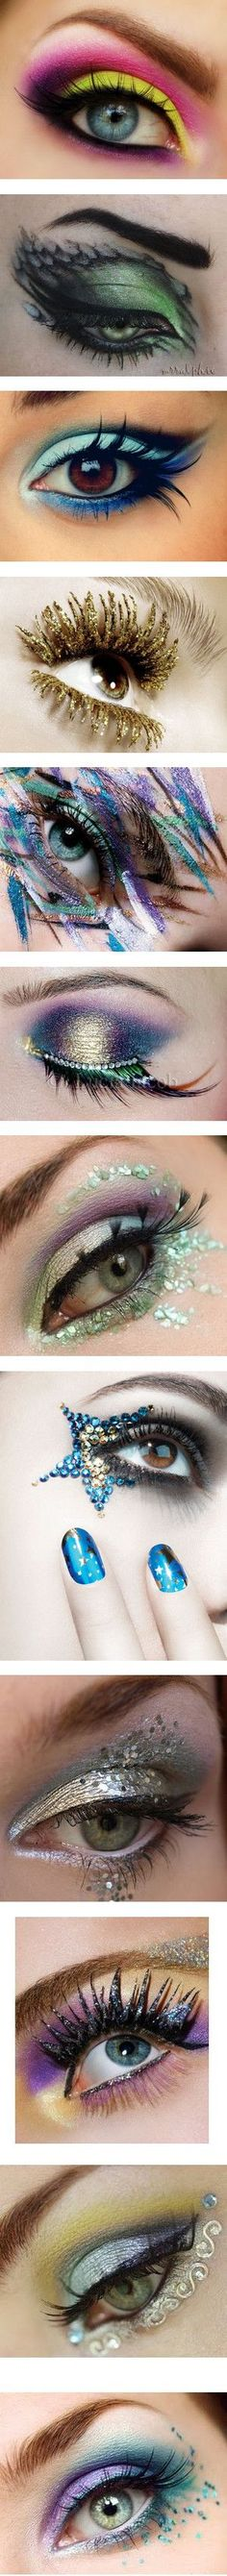 Capitol Make-up by shanayaswonderland on Polyvore featuring beauty products, makeup, eye makeup, eyeshadow, eyes, beauty, backgrounds, pictures, people and maquillaje